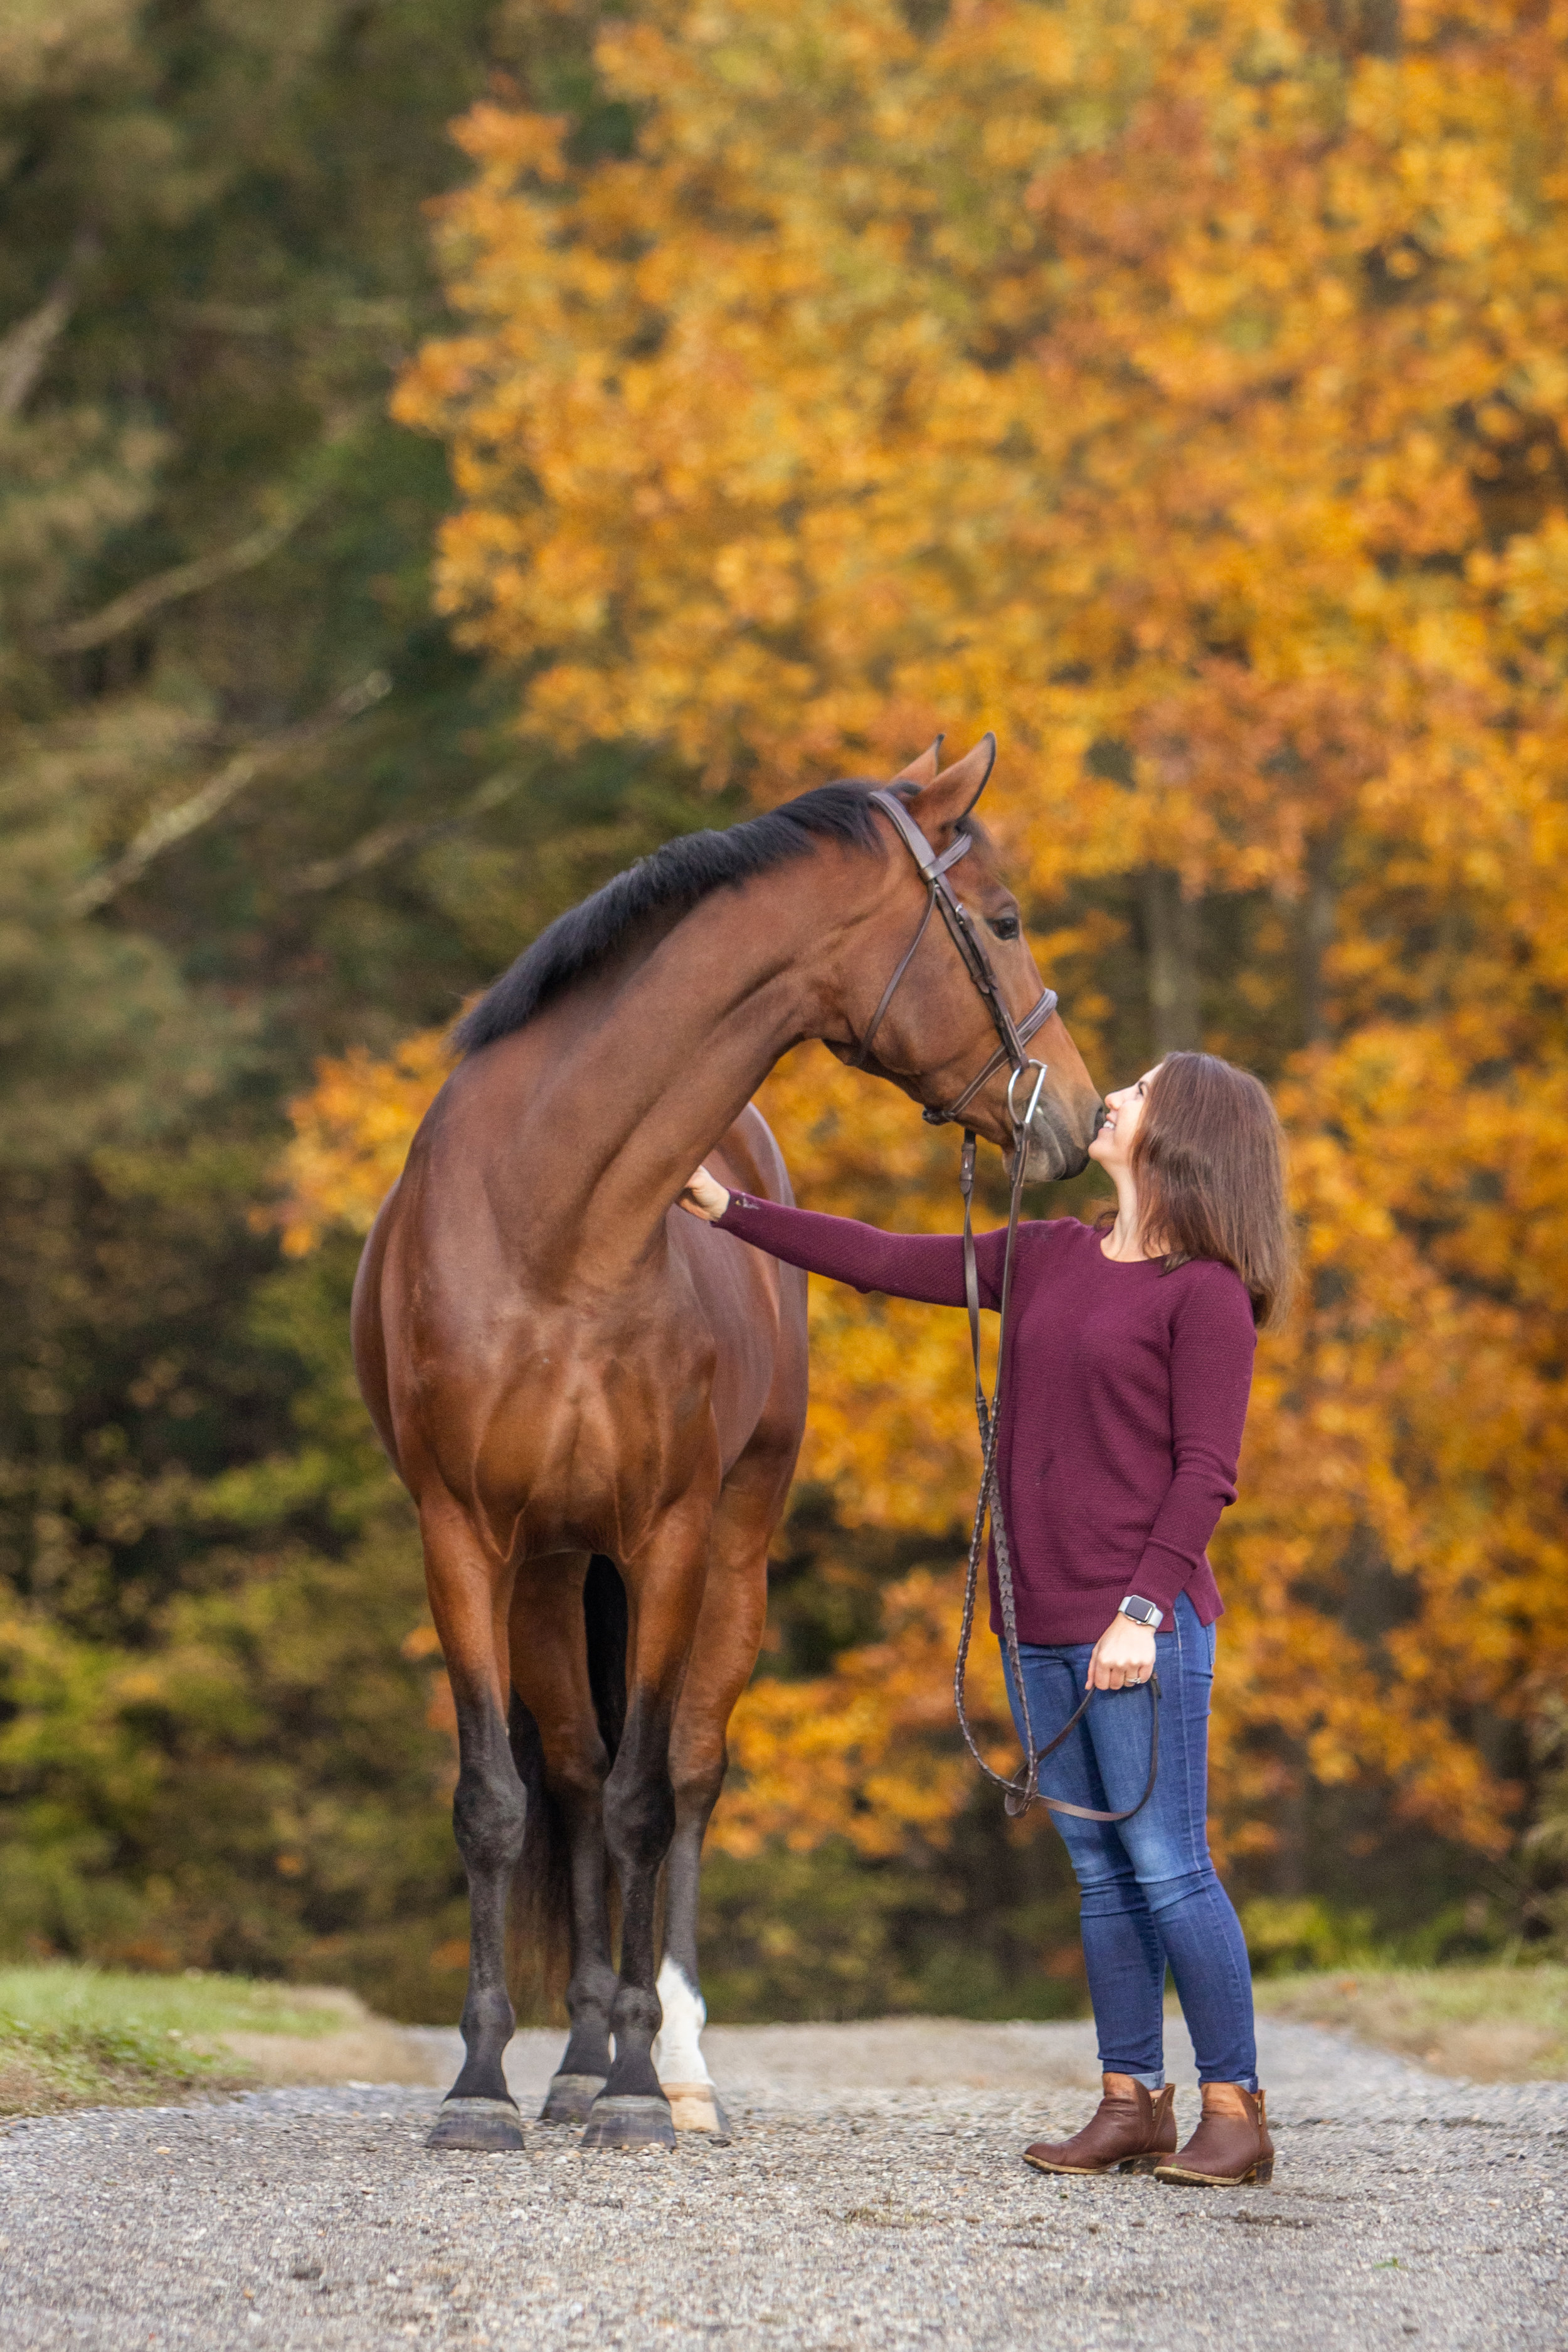 SILVER PACKAGE - $100A smaller, more budget-friendly option that is perfect for someone wanting a few images to share on social media, this package includes:- A 20-minute horse and rider portrait session- 5 digital images in a personal online gallery with easy downloading- Options to purchase prints and products through a professional image lab